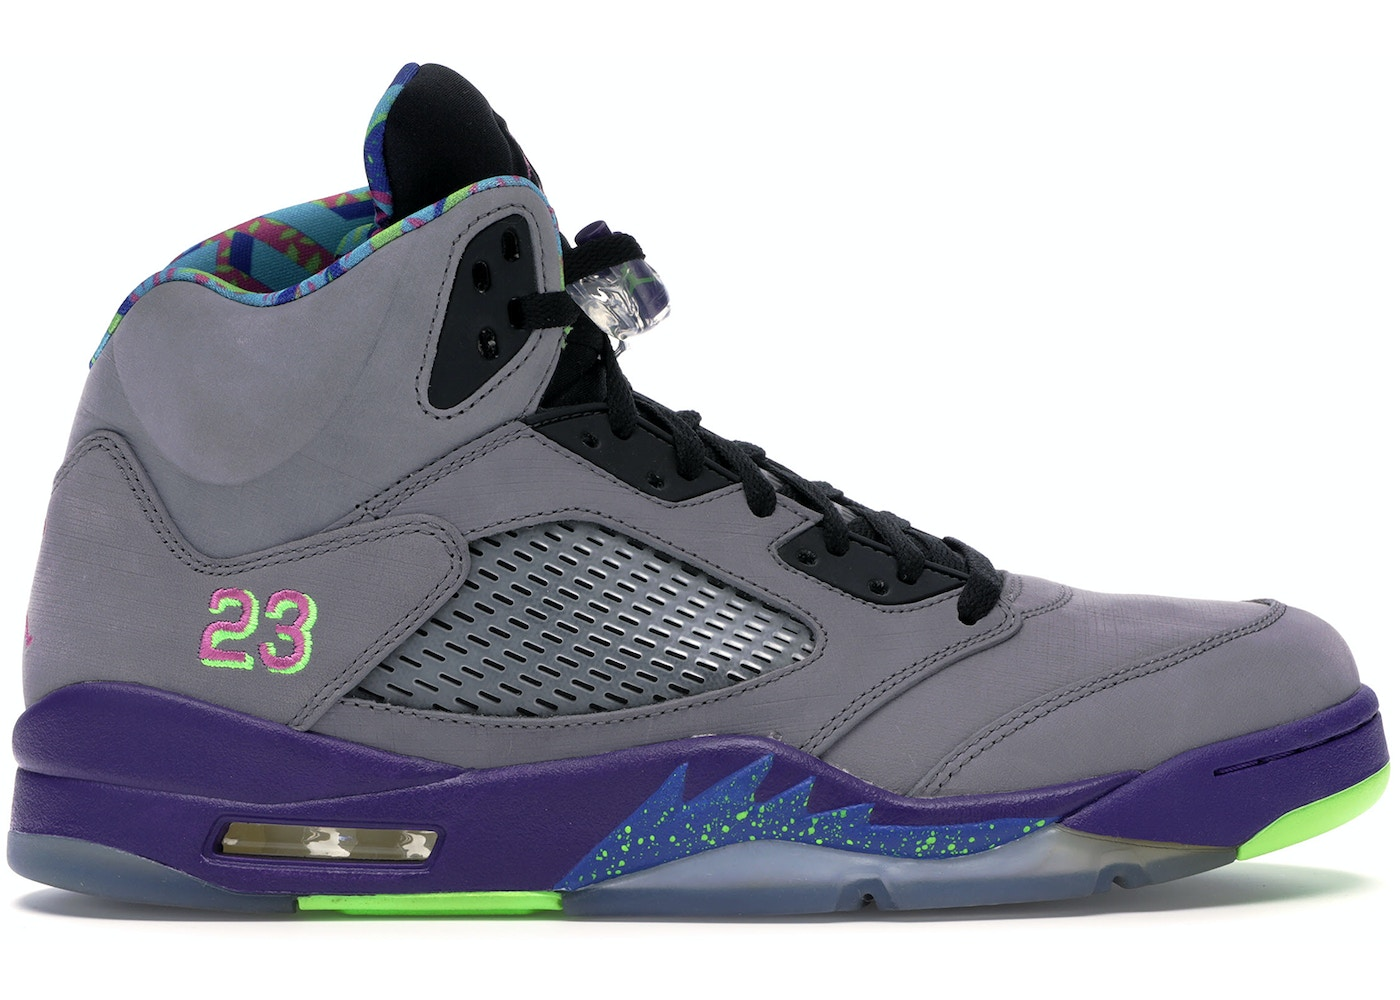 e7d419f1f04 Jordan 5 Retro Bel-Air - 621958-090